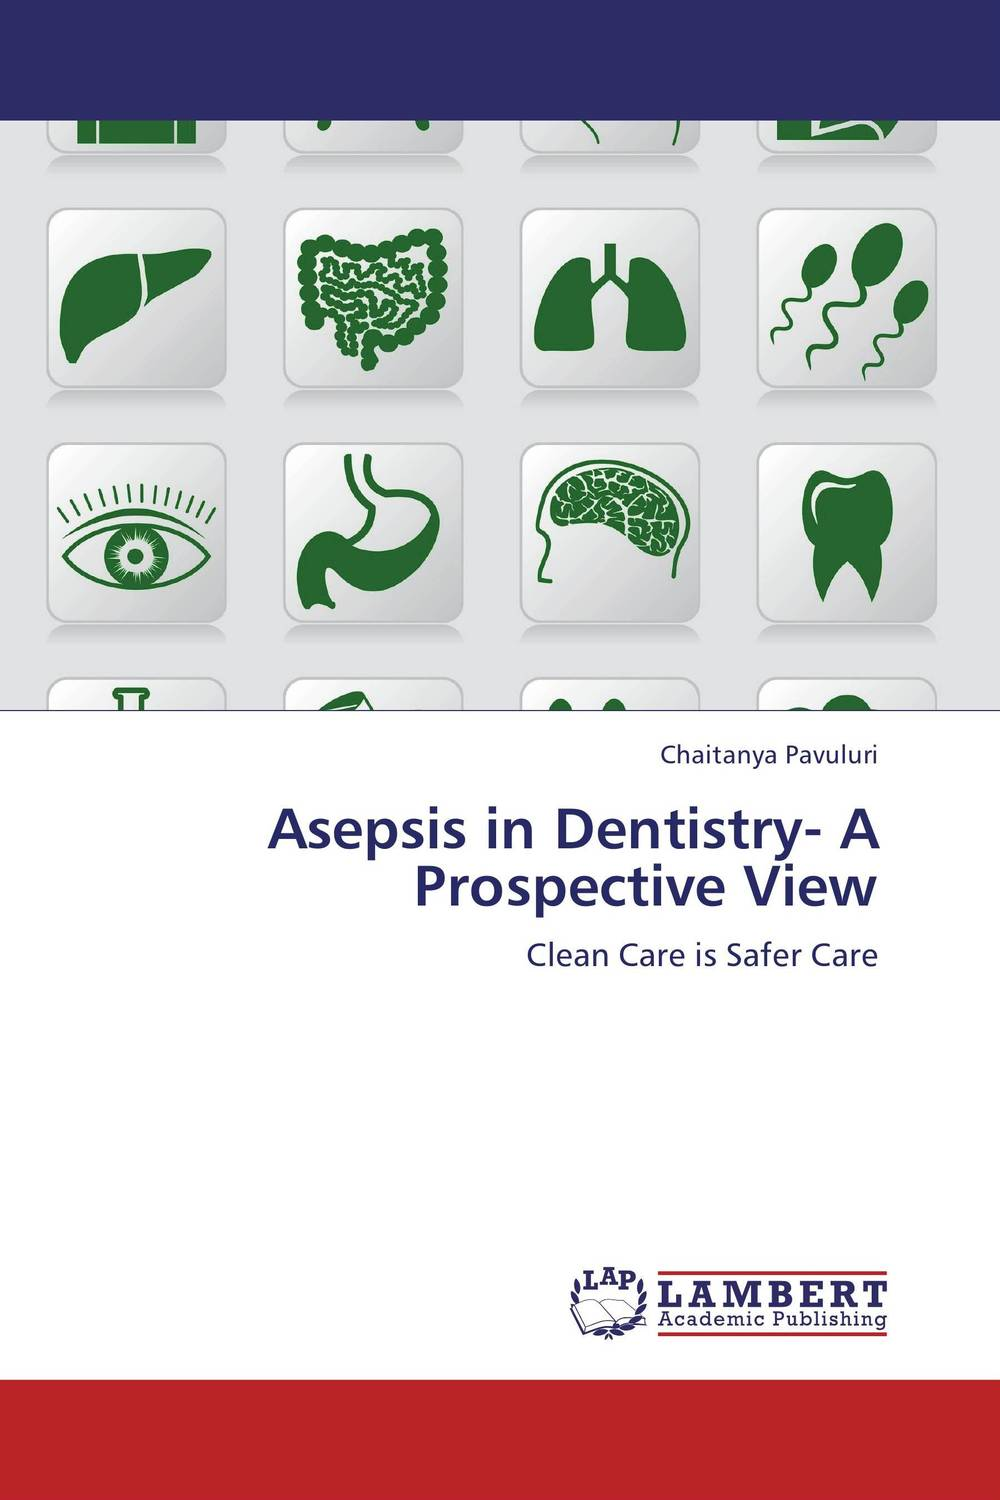 Asepsis in Dentistry- A Prospective View psychiatric consultation in long term care